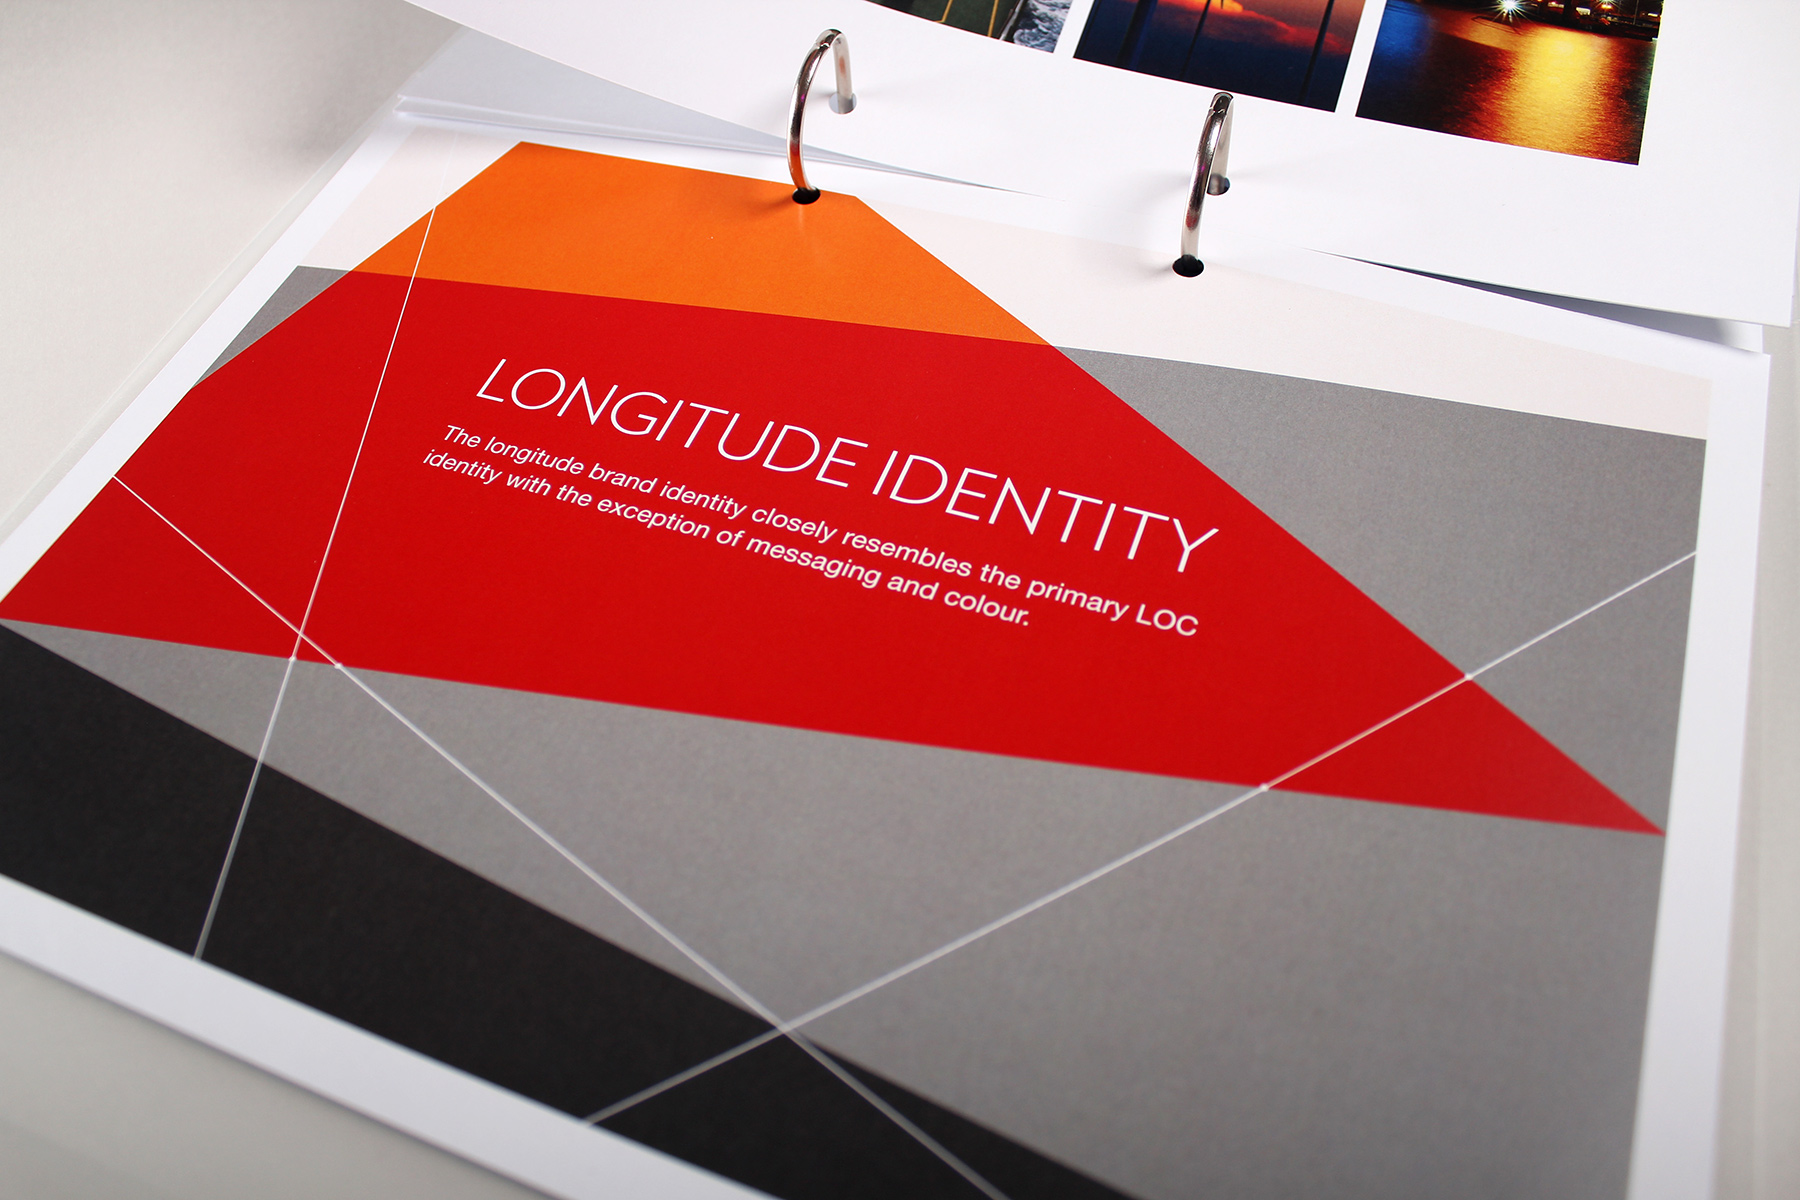 The brand identity was also applied to a sister business, Longitude Engineering, with an adaptation of colour palette and imagery.